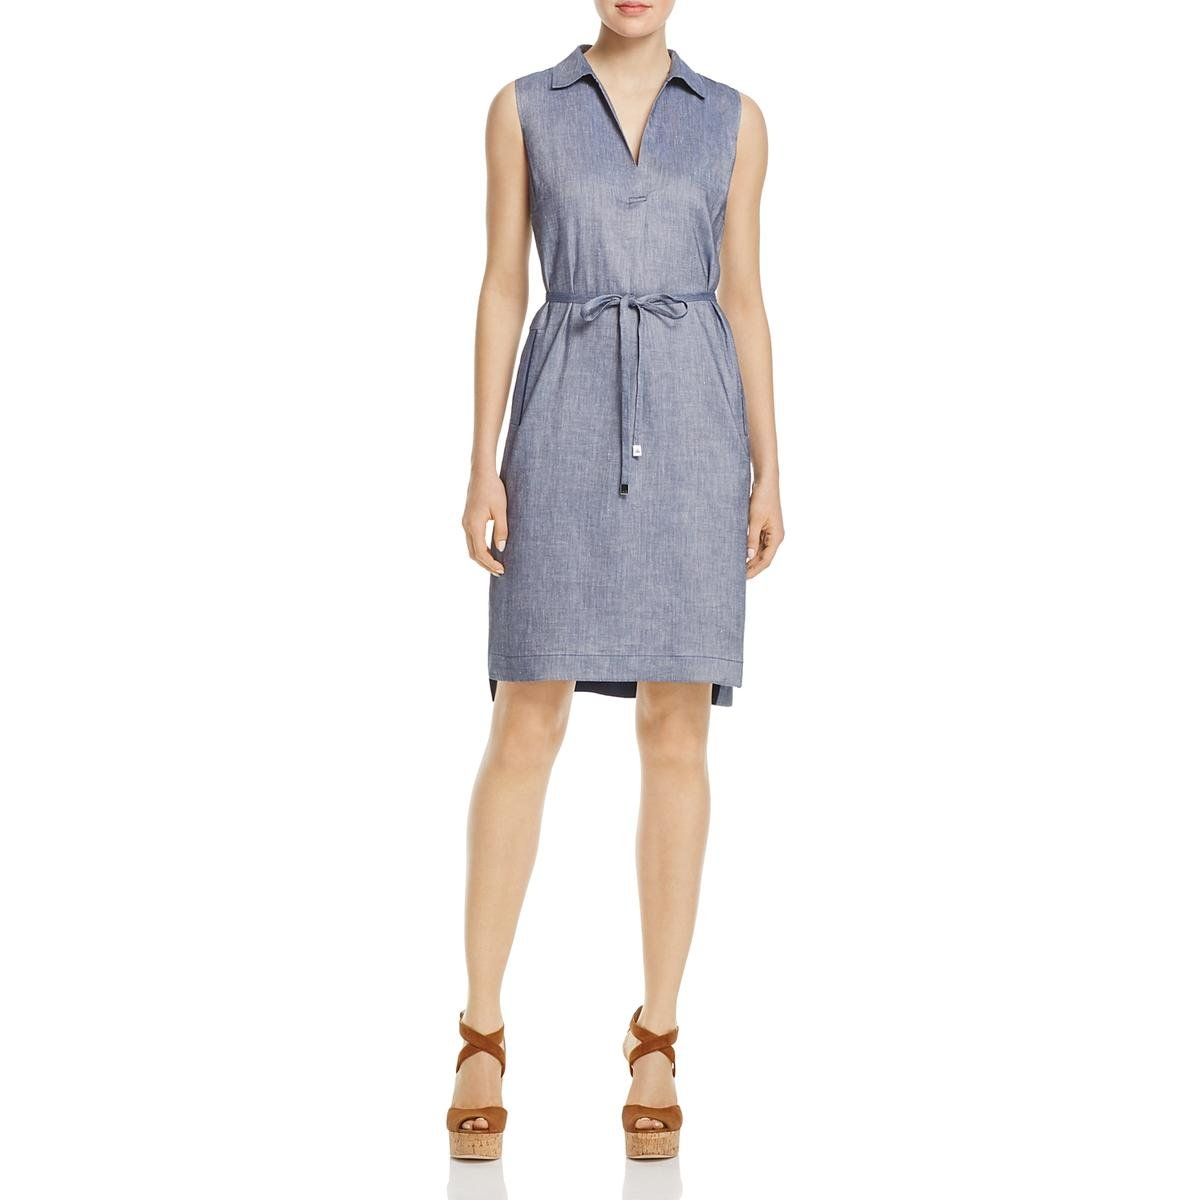 Pacific Multi Med Wash Denim Lafayette 148 New York Womens Robinson Pockets Point Collar Wear to Work Dress